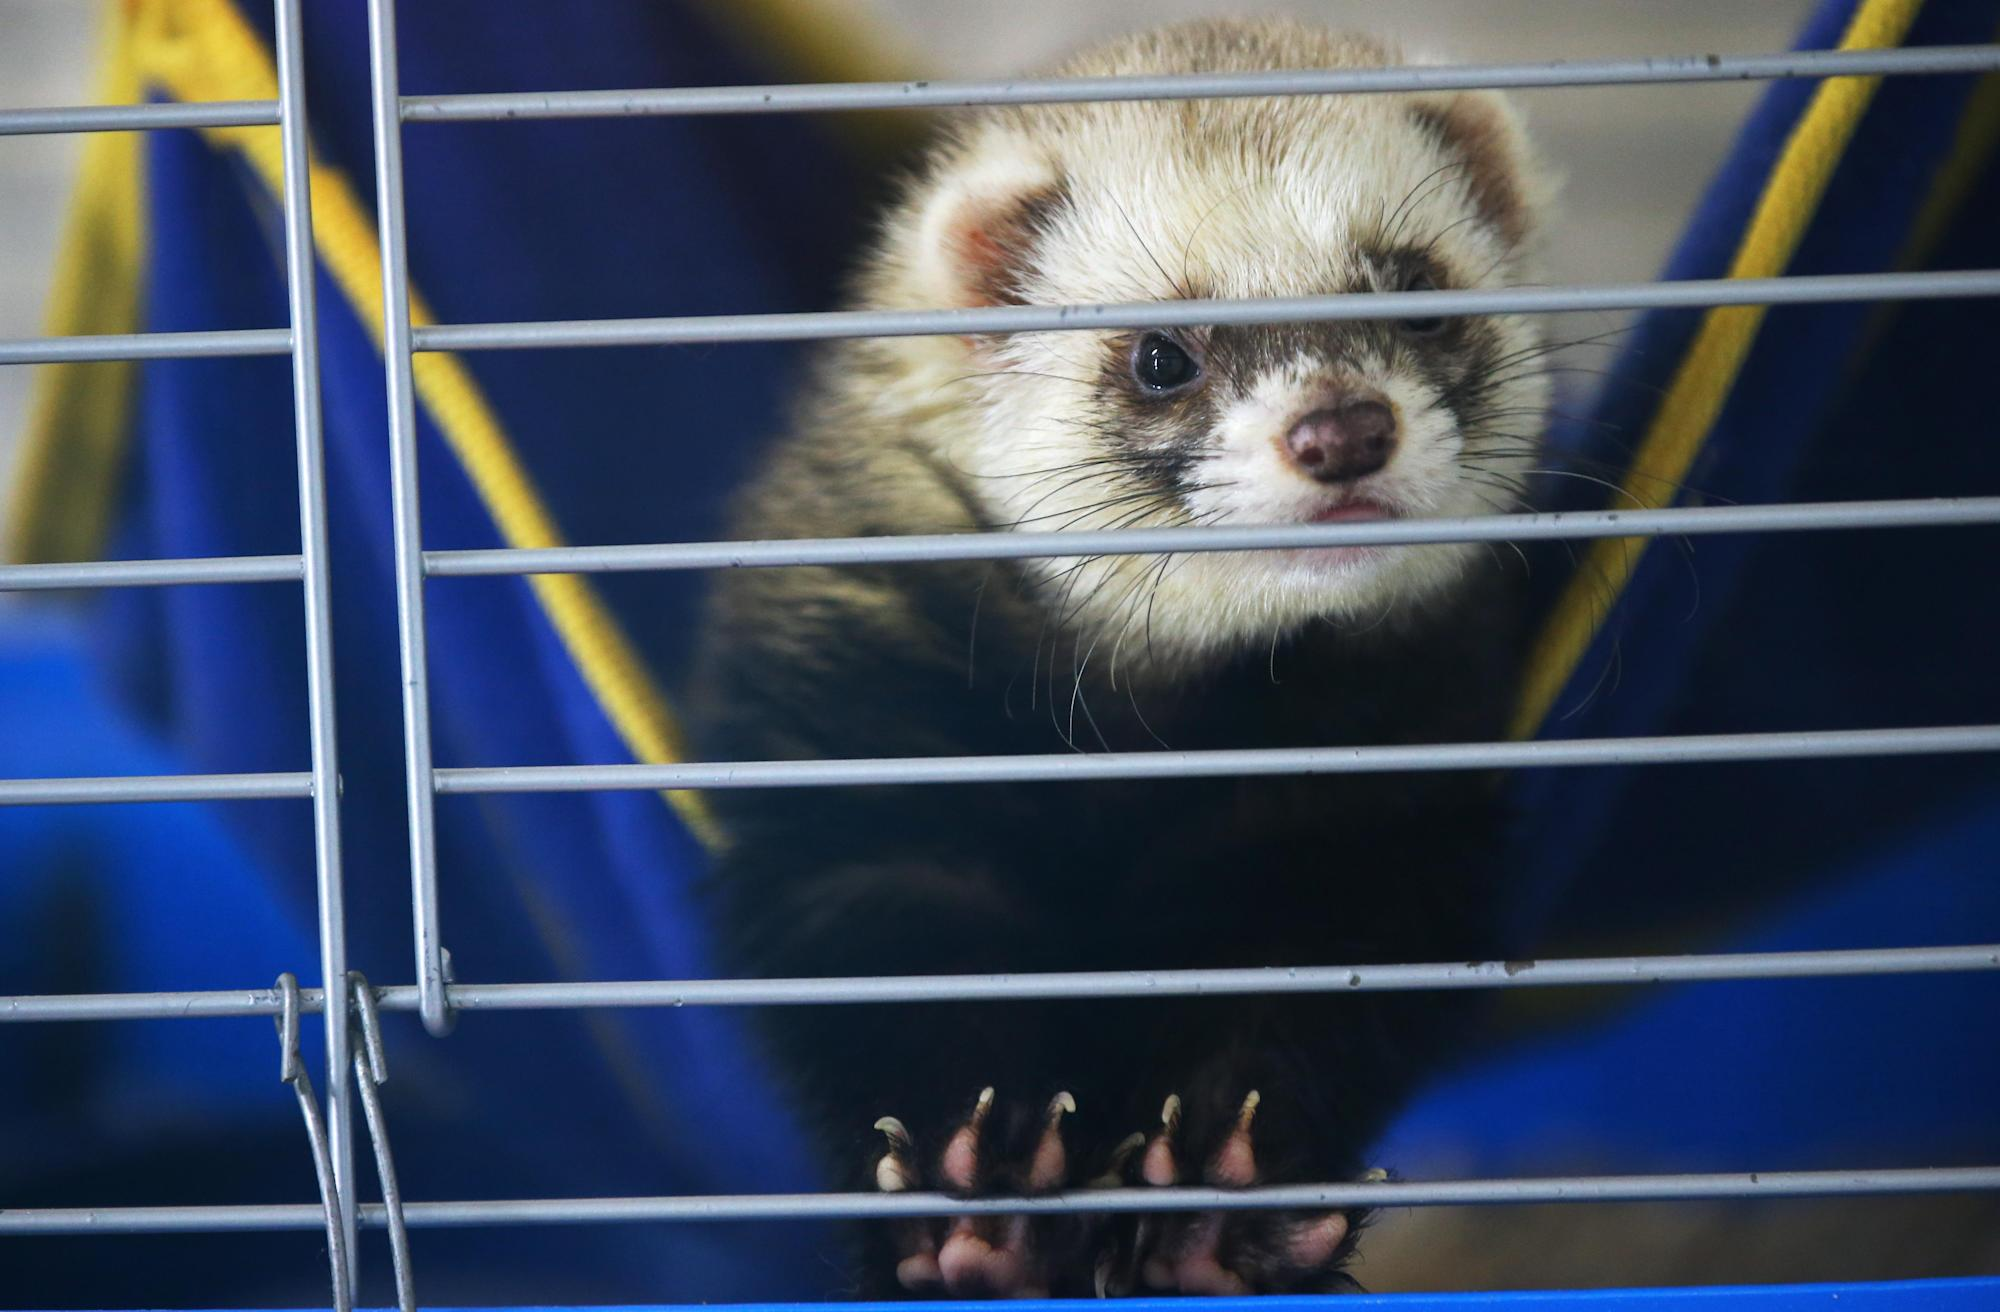 Nasal Spray Prevents COVID Infection in Ferrets, Study Finds